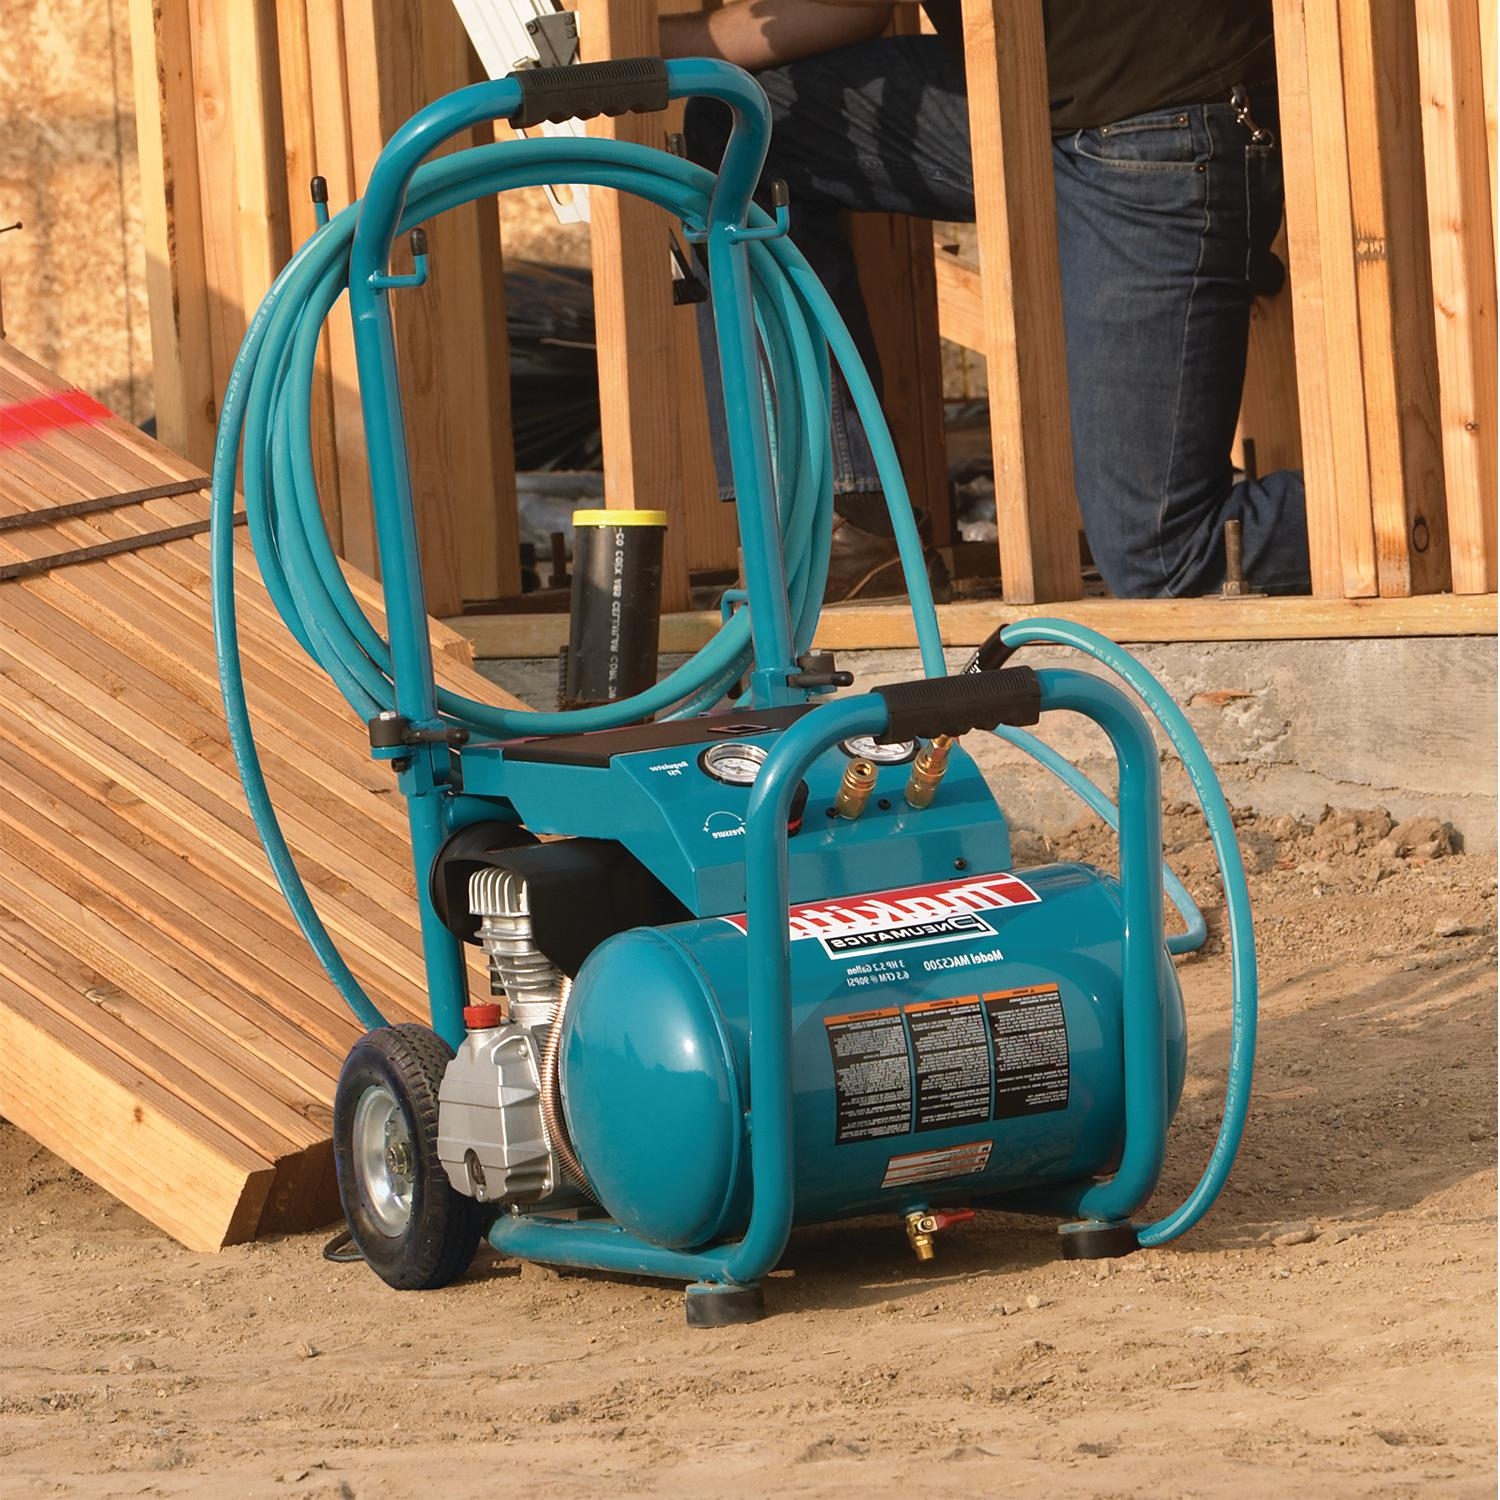 Makita MAC5200 Big Bore 3.0 Air